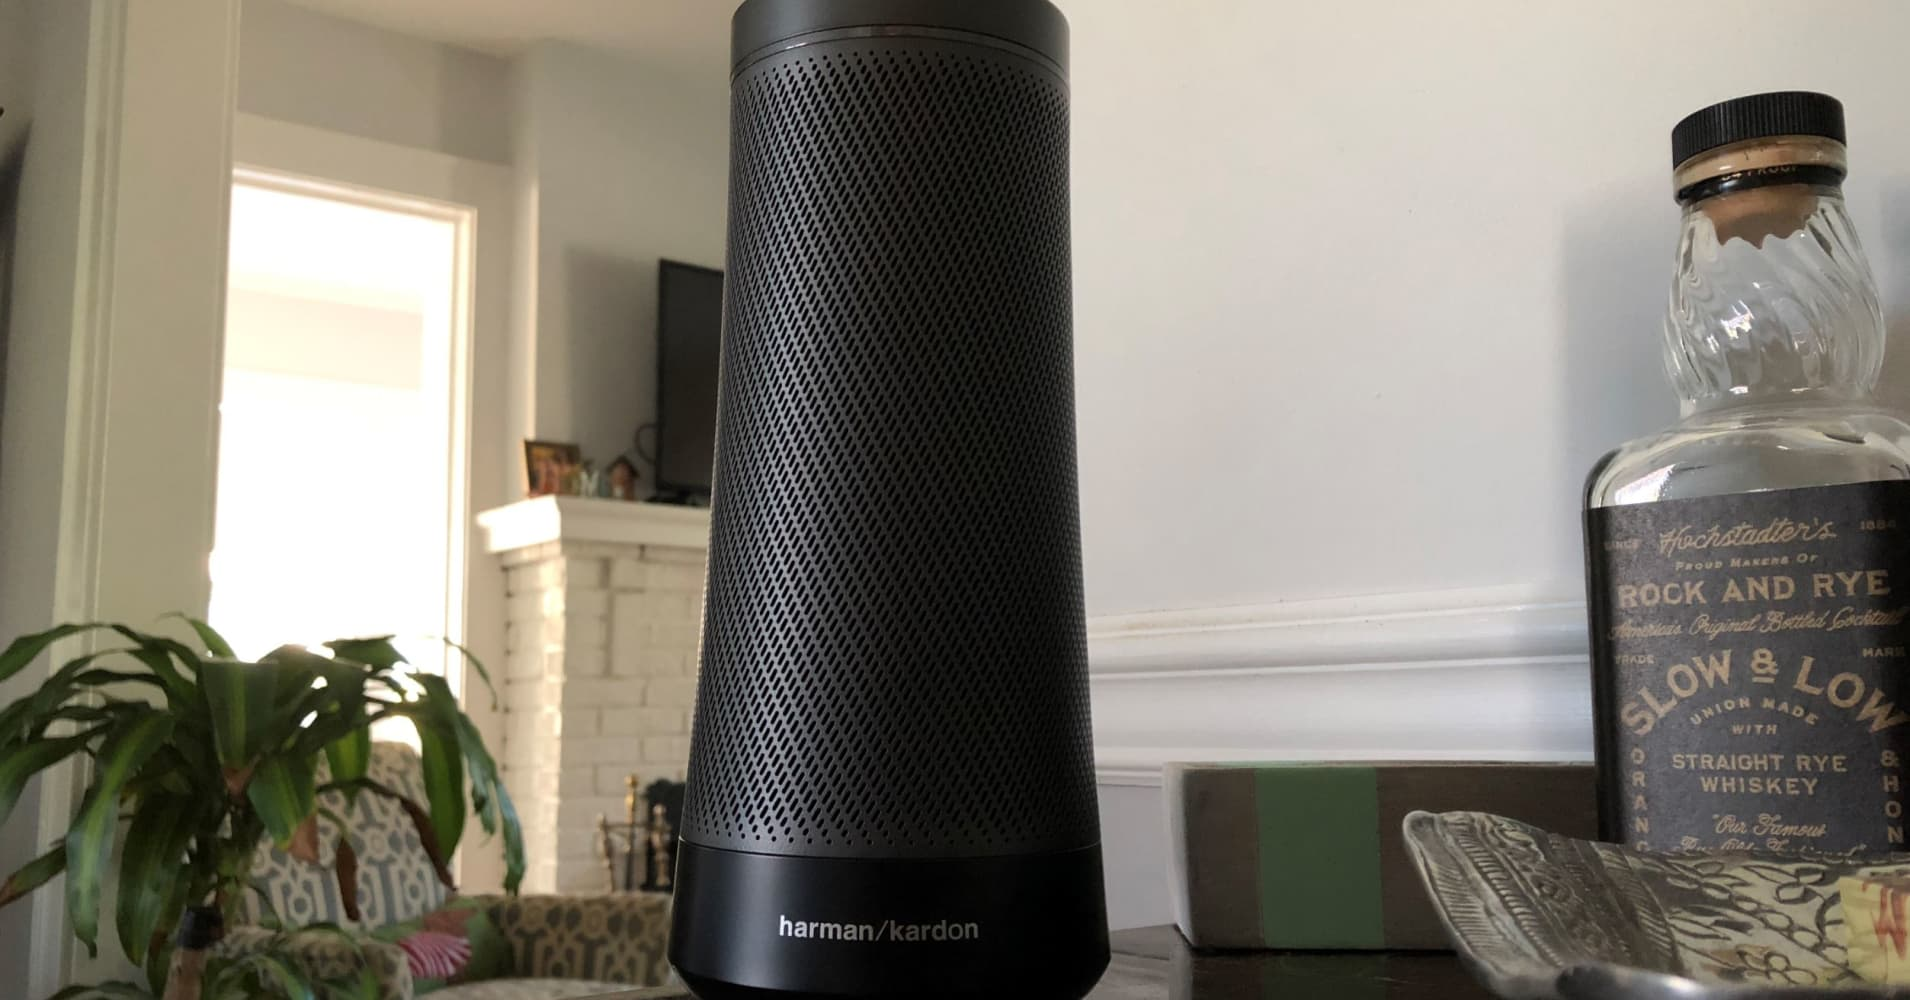 Microsoft's noble attempt at a smart speaker isn't as good as the Google Home or Amazon Echo